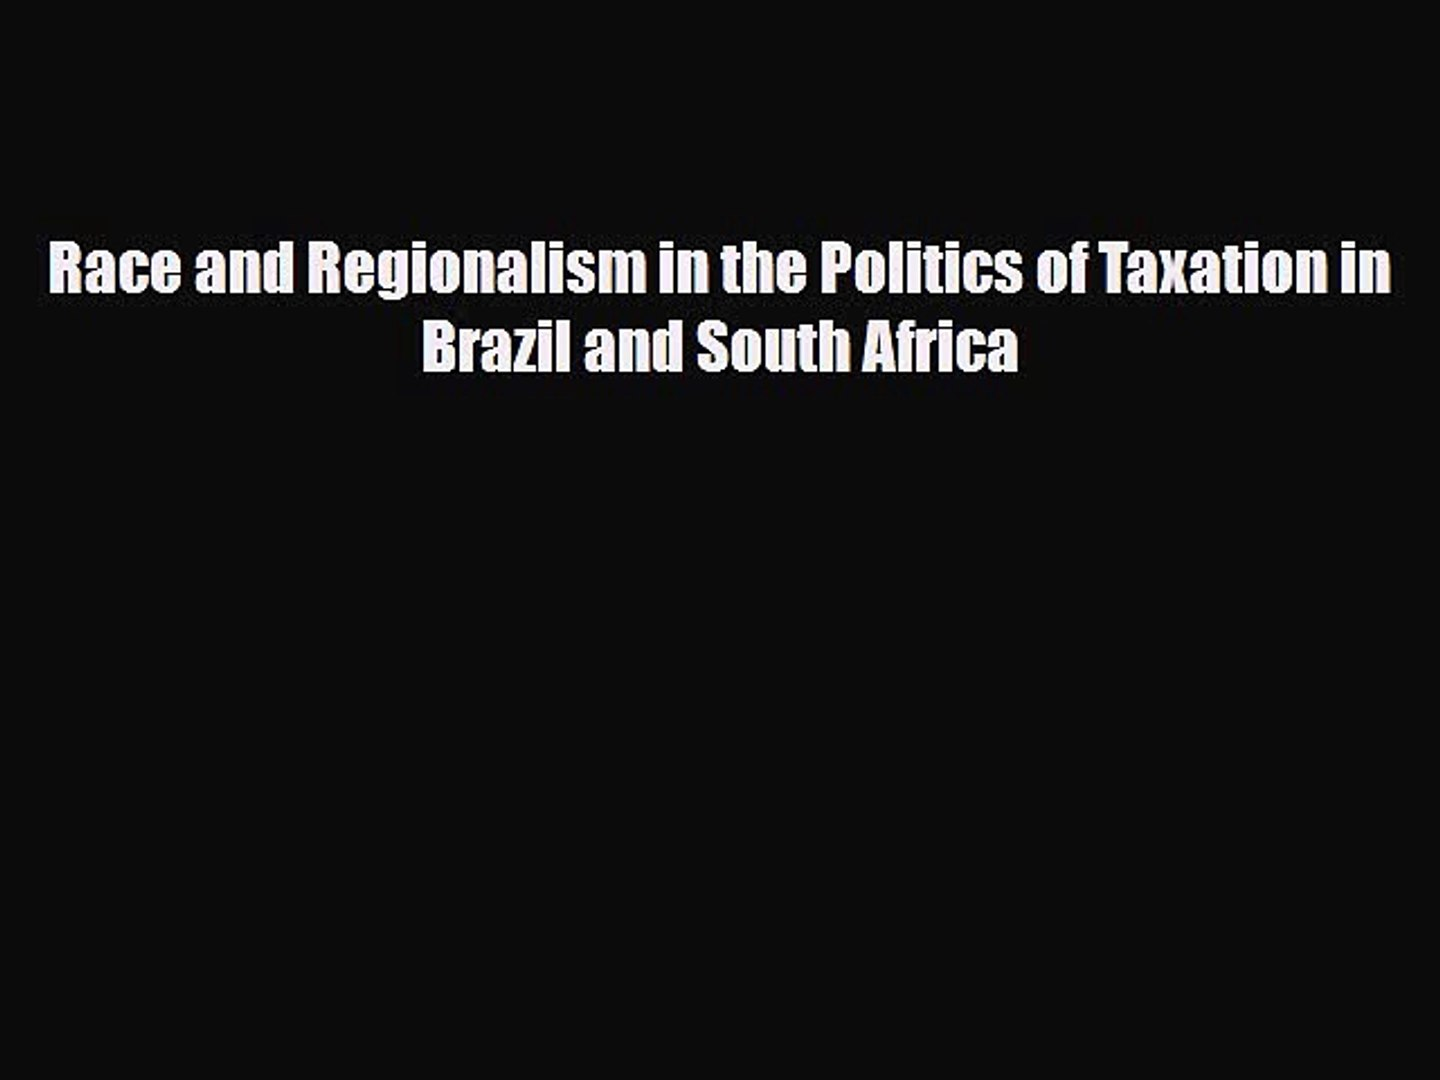 [PDF] Race and Regionalism in the Politics of Taxation in Brazil and South Africa Read Full